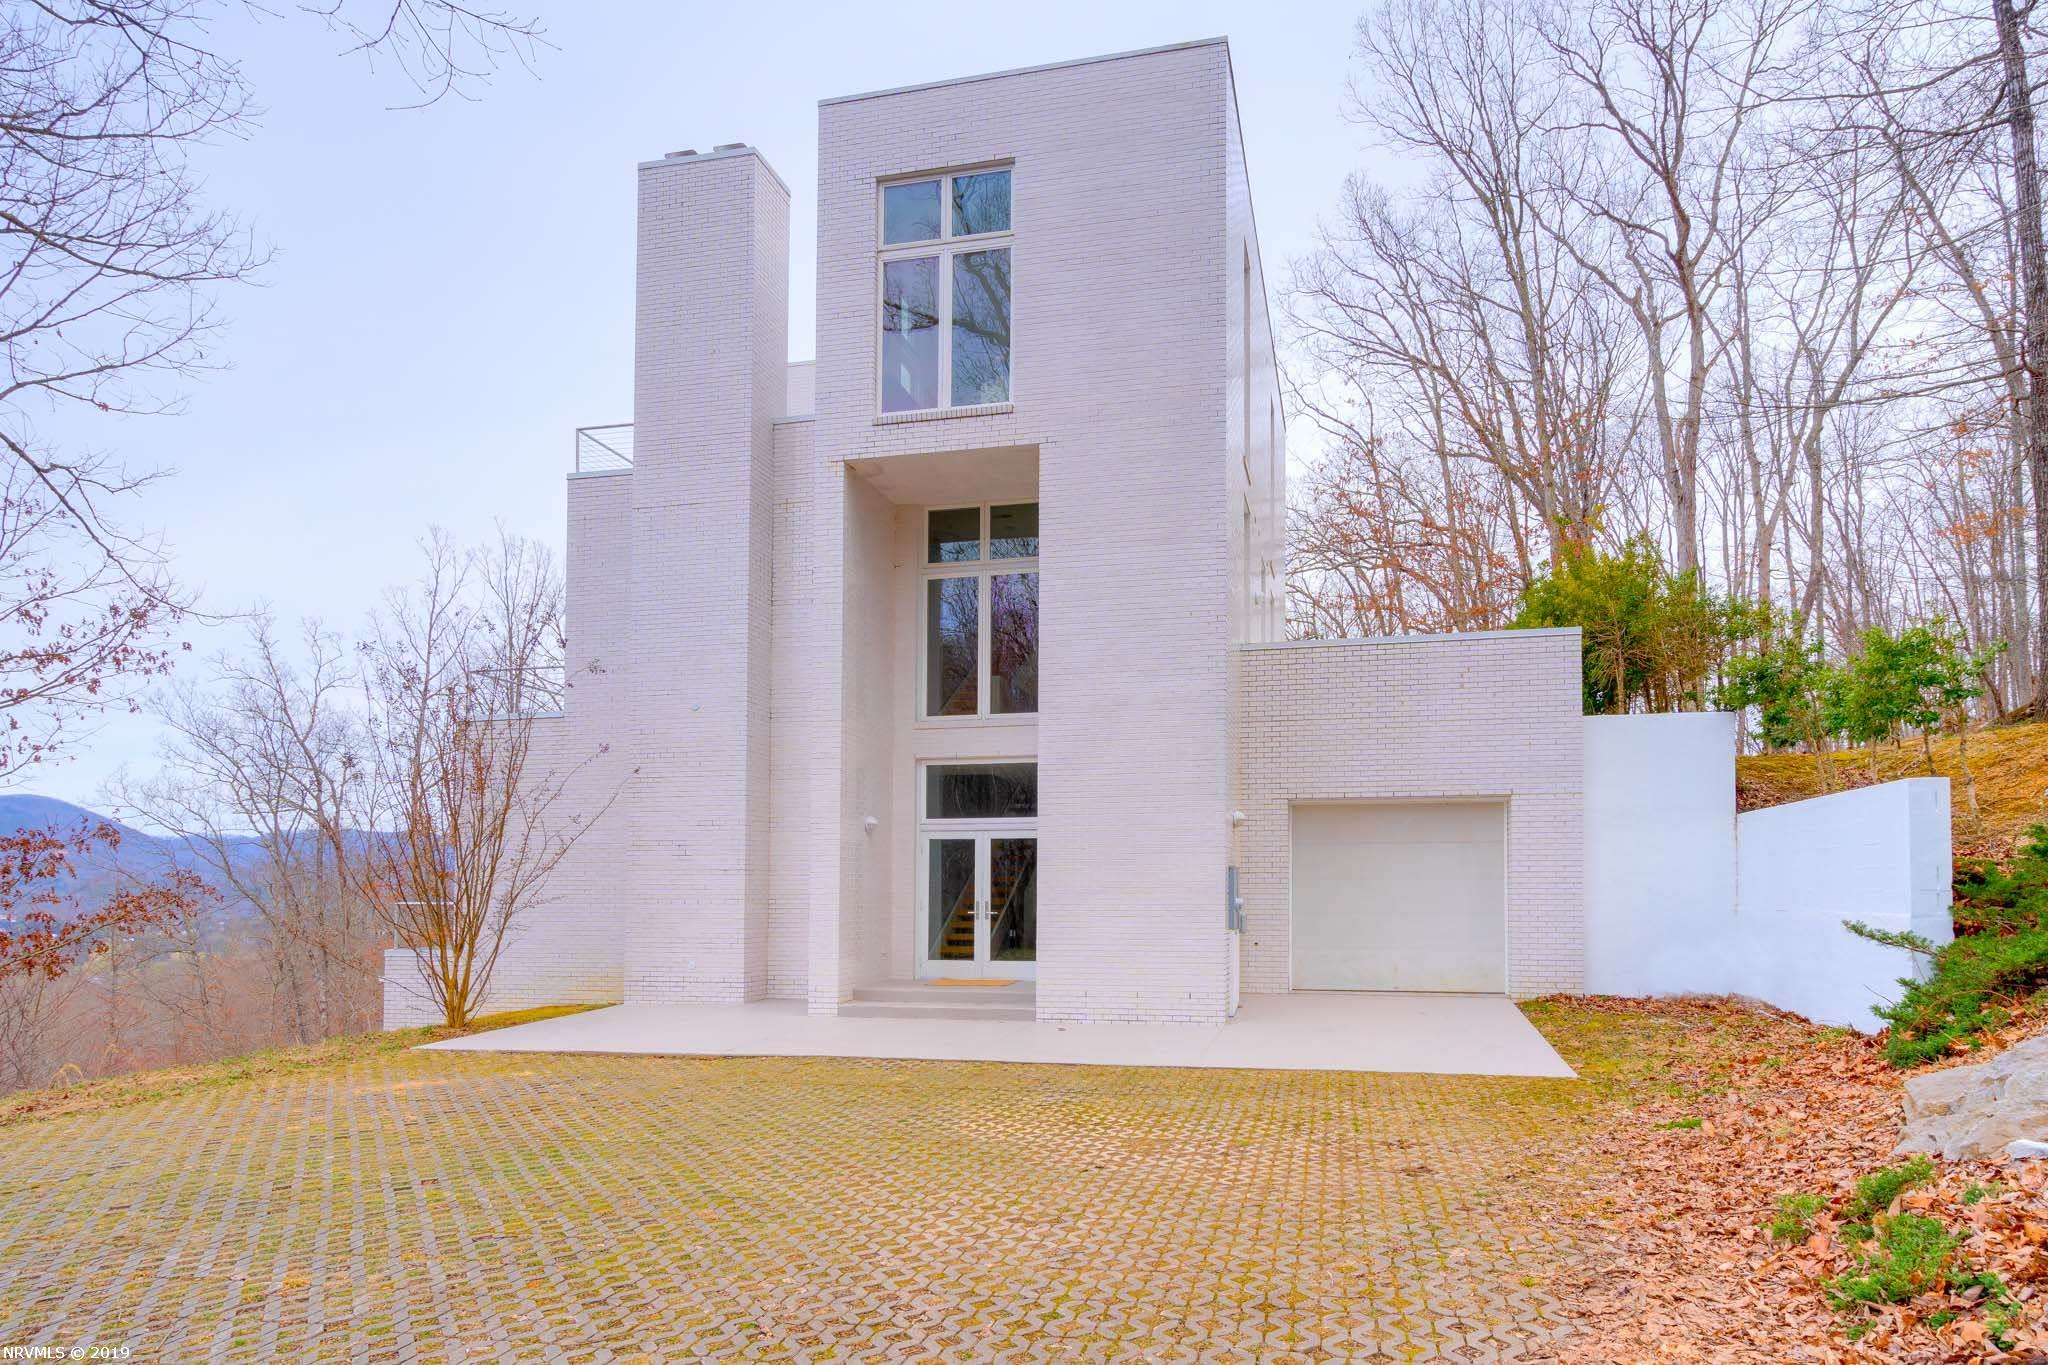 Air BnB before you buy! AIA NATIONAL AWARD WINNING CONTEMPORARY OFFERED FURNISHED OR UNFURNISHED AND IS AN ACTIVE AIRBnB!  Nestled in heart of the Blue Ridge, Deercroft is one of Blacksburg's most elite neighborhoods, providing the best of town and country living (3 miles from downtown / Lane stadium, 1.5 miles to the Blacksburg Country Club). The Deercroft House boasts some of the best views of multiple mountain ranges from EVERY room in the house. A floating staircase spans 3 stories, and serves as a beautiful core in this one of a kind, custom built, porcelain brick exterior home. Owners gutted the kitchen down to the studs and installed a brand new kitchen, replaced some windows and doors and enhanced the homes weather proofing in 2018. A paved private shared driveway is maintained by homeowners association. Easy access to Virginia Tech, VCOM, VT Corporate Research Center and also minutes to Roanoke and all New River Valley destinations.